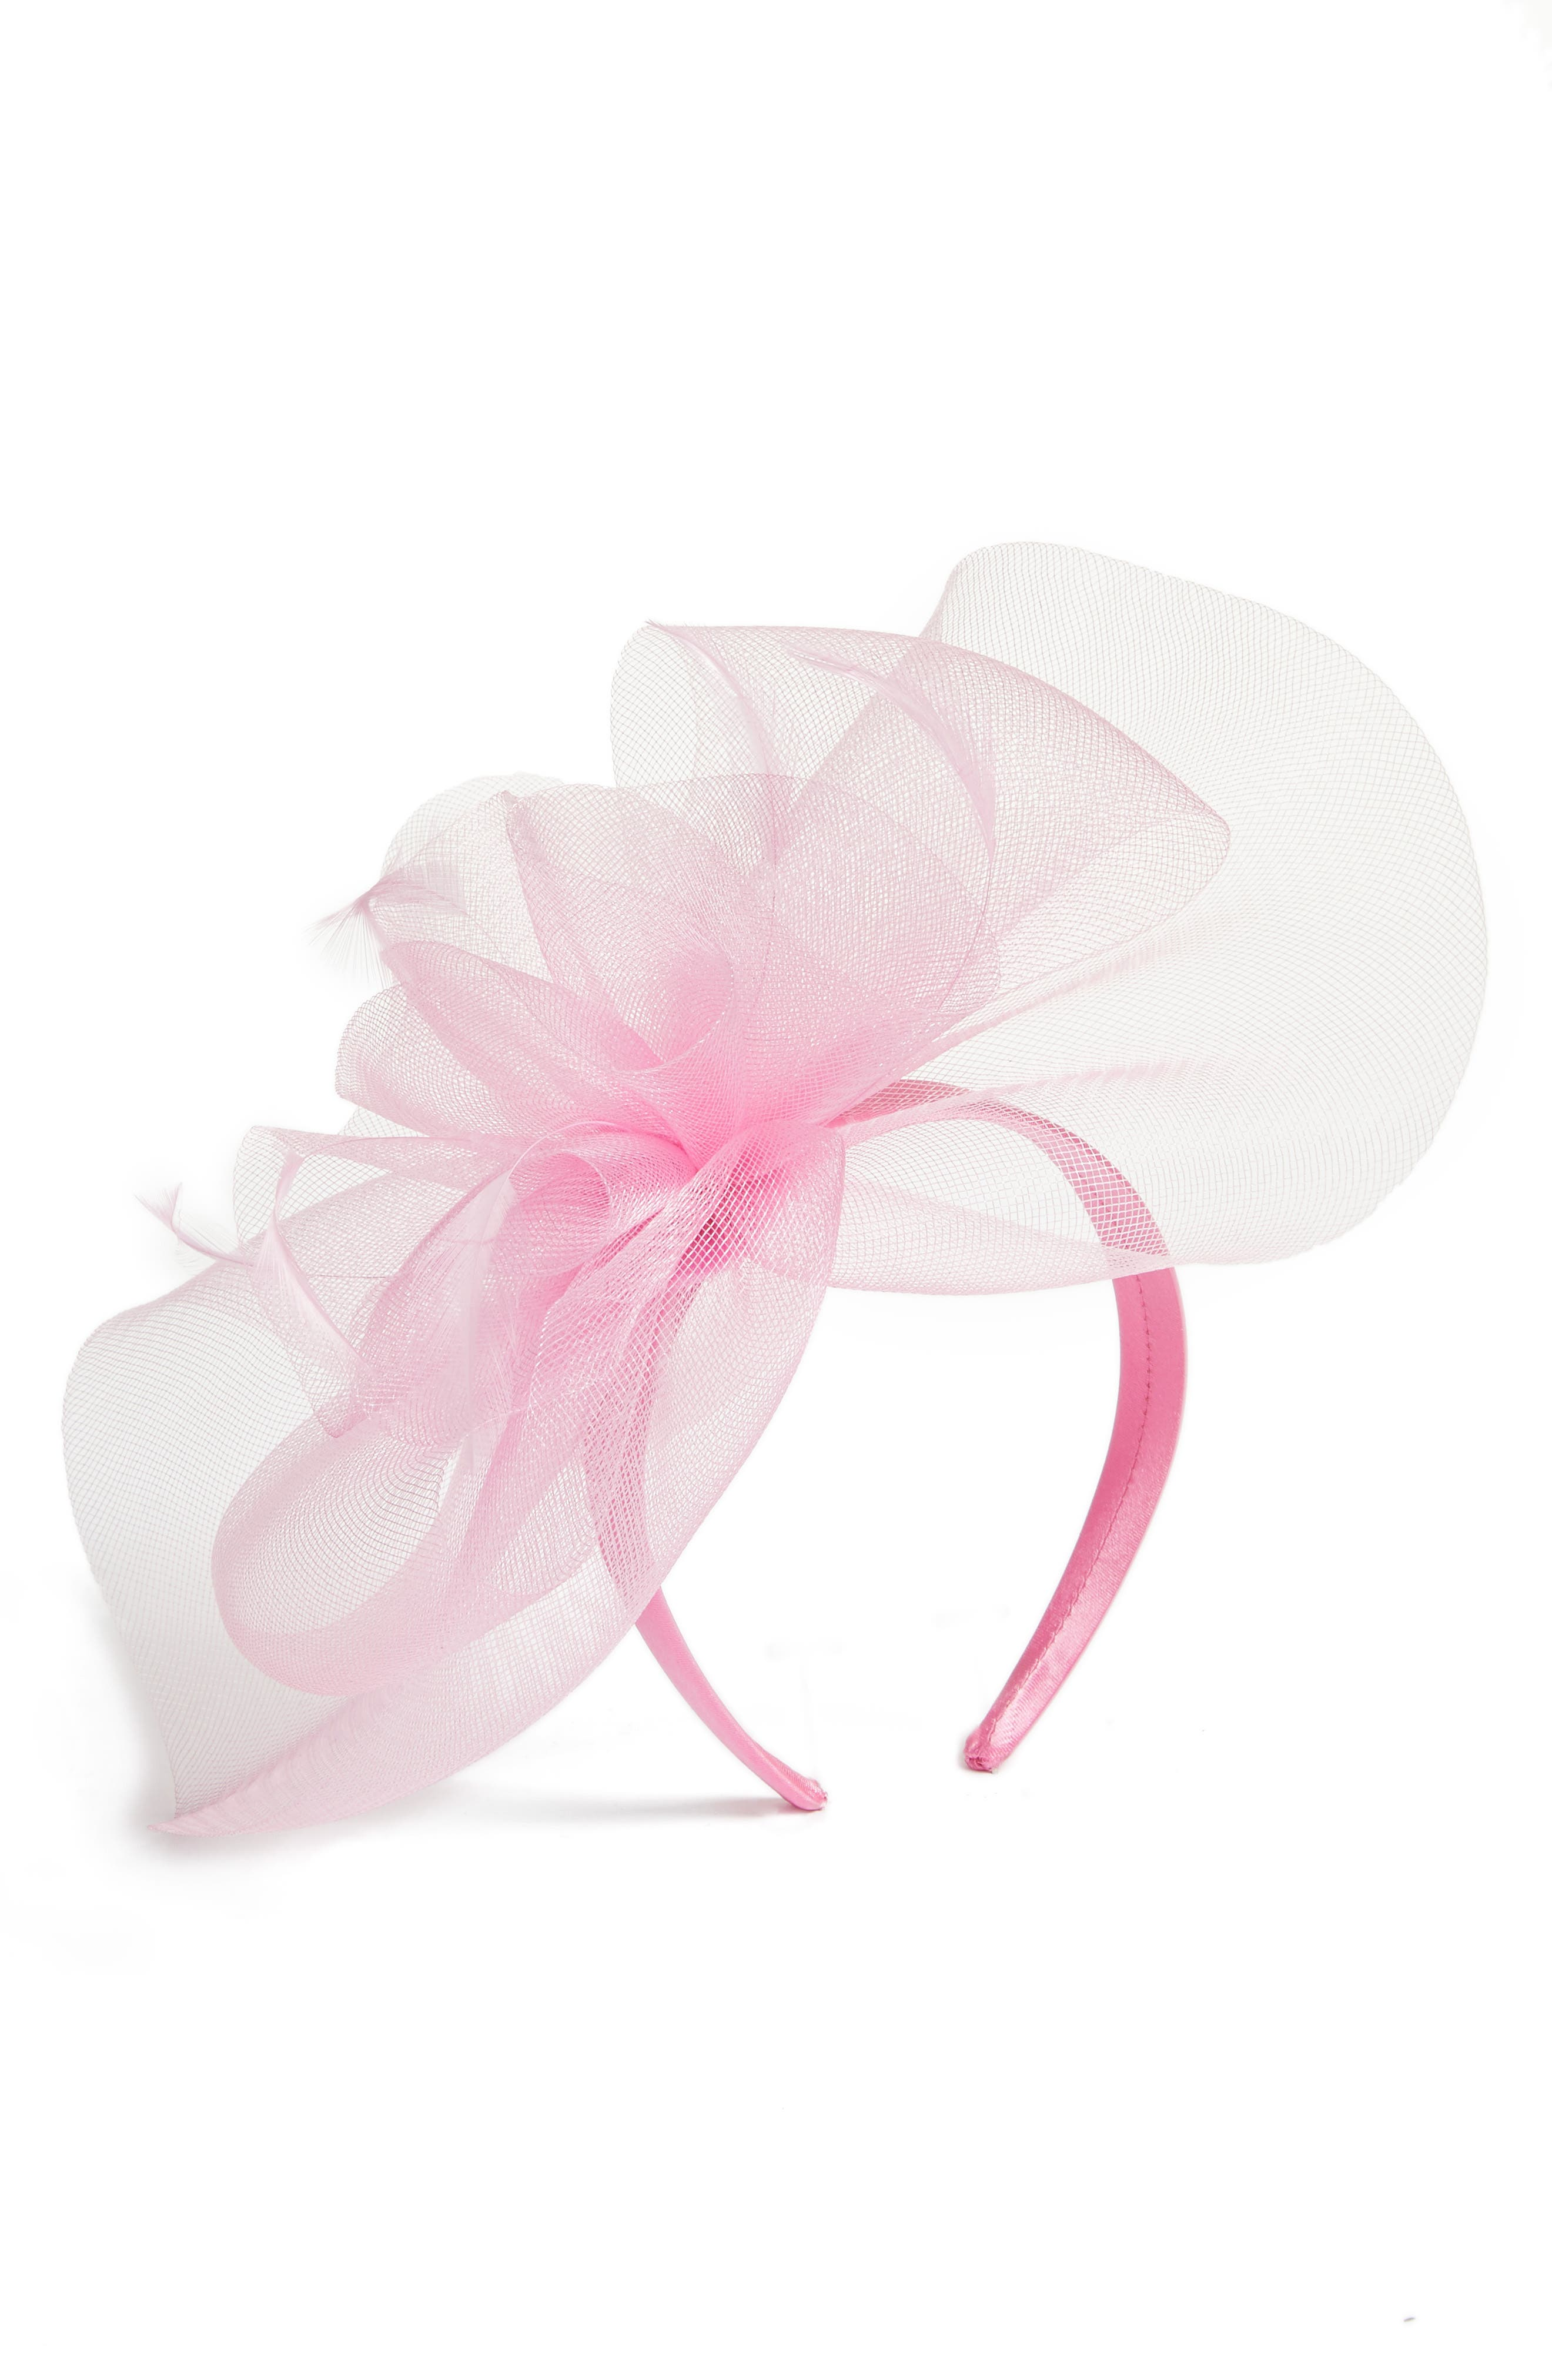 NORDSTROM,                             Feather Bouquet Fascinator Headband,                             Main thumbnail 1, color,                             660